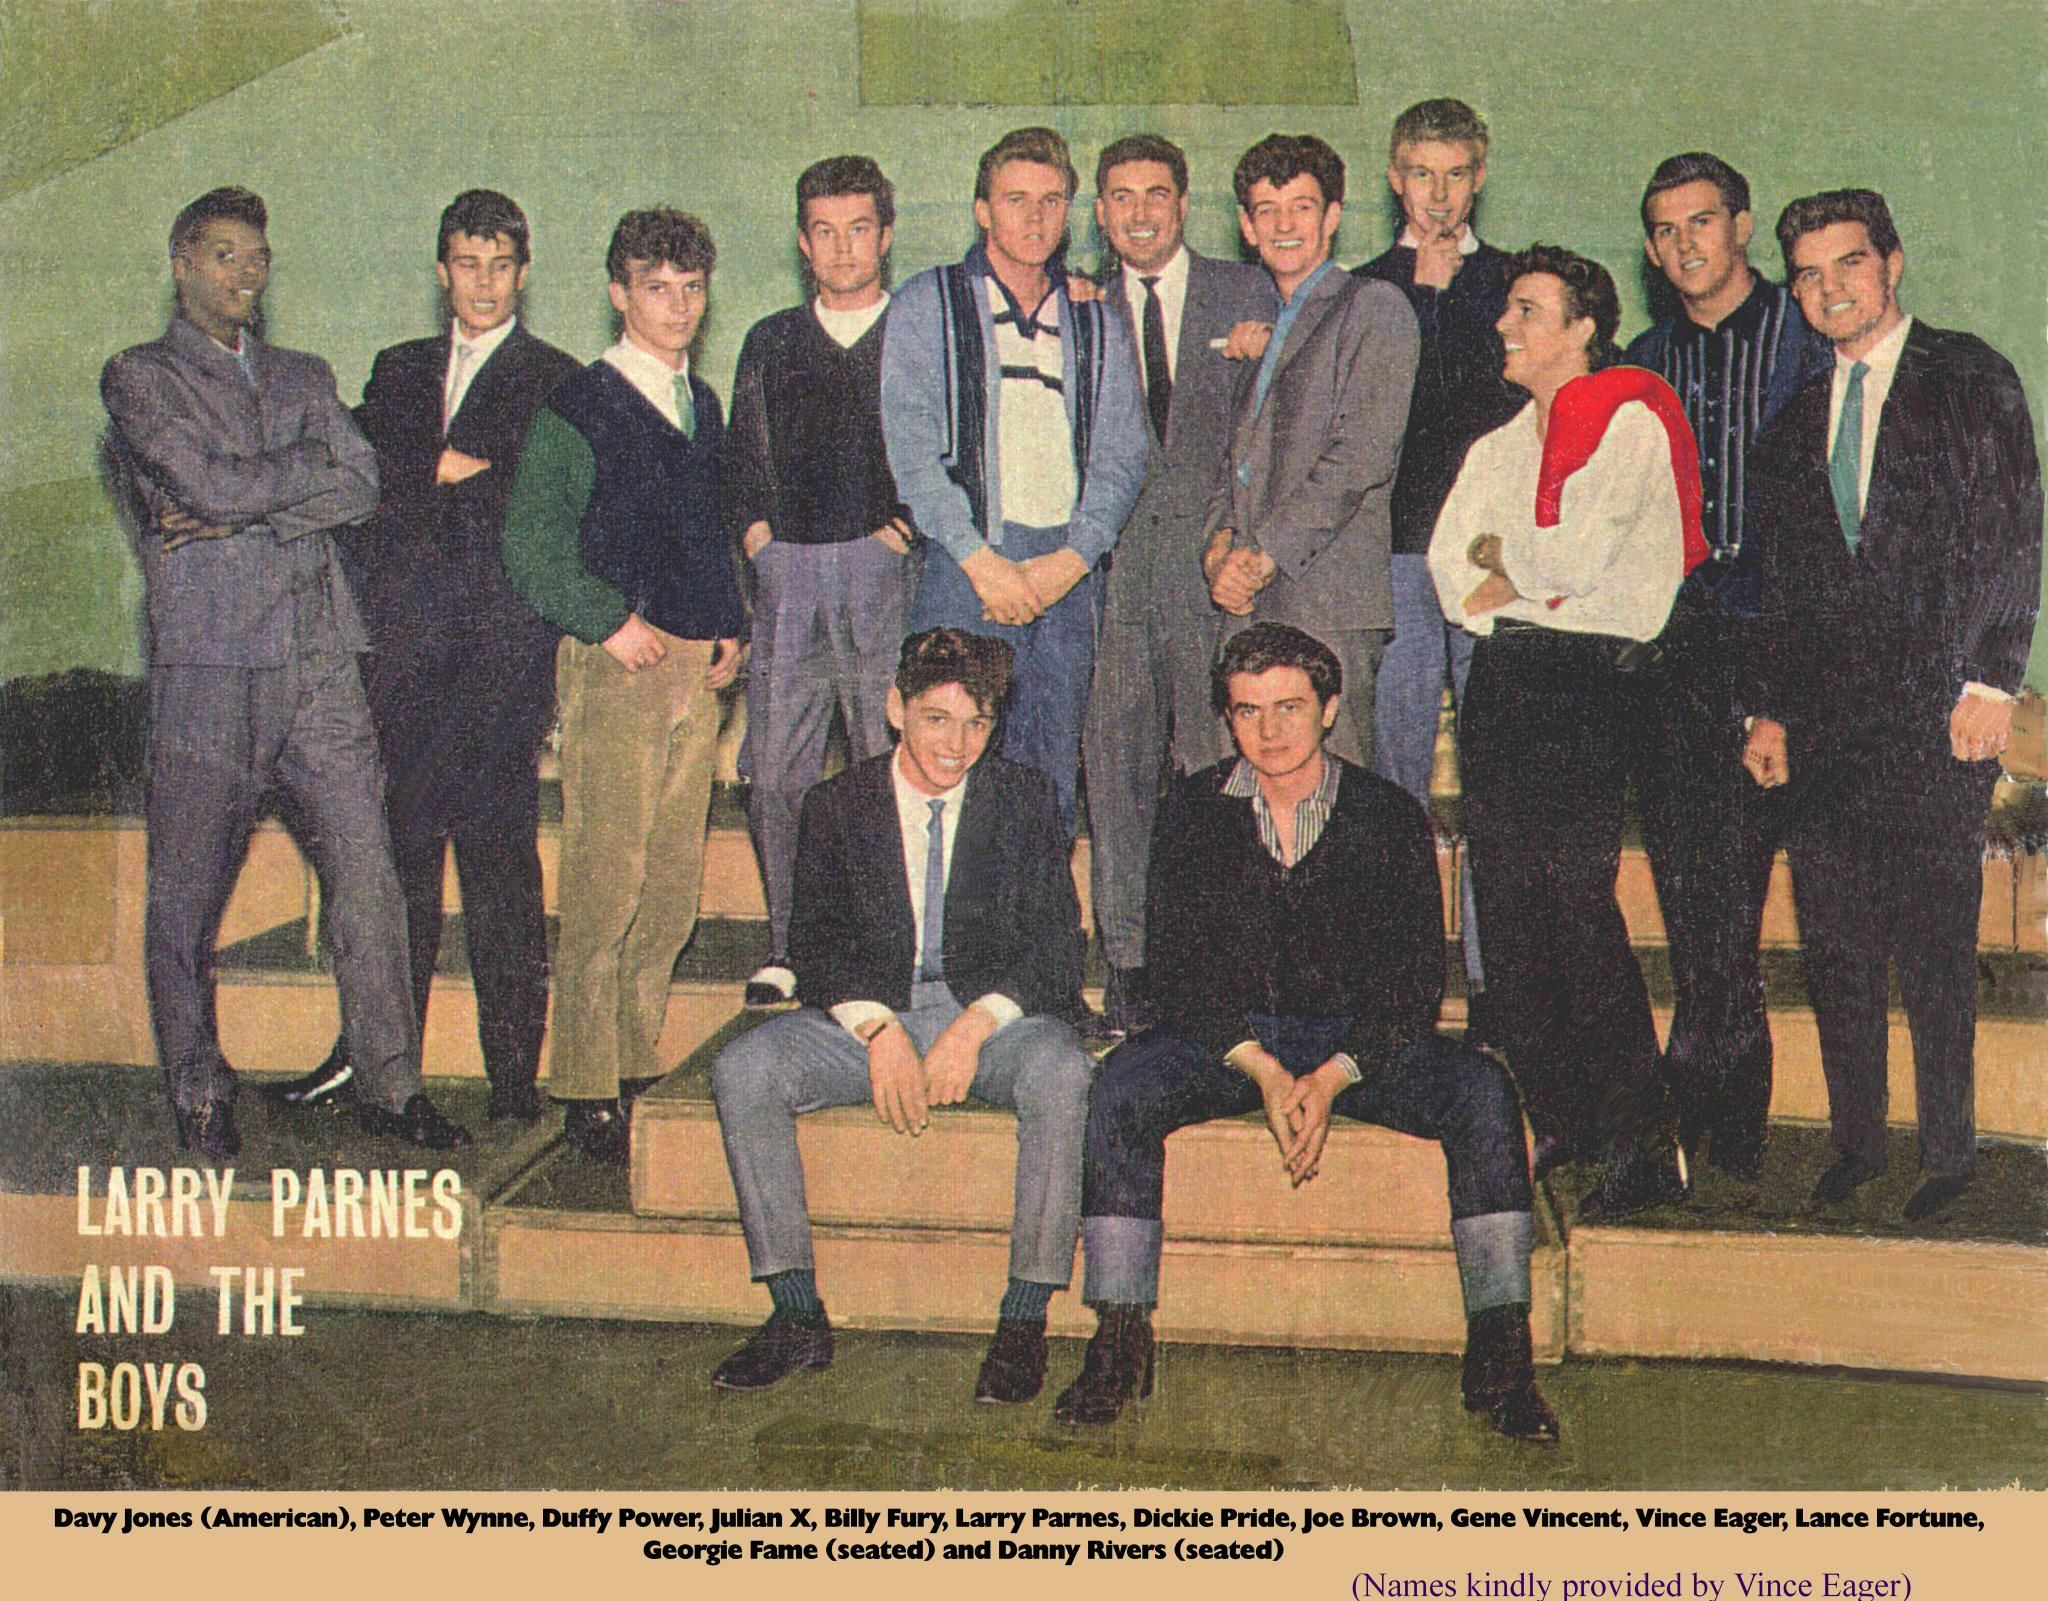 Greased Quiffs And Switchblades Growing Up Teddy Boy In: Larry Parnes And The Boys 1956